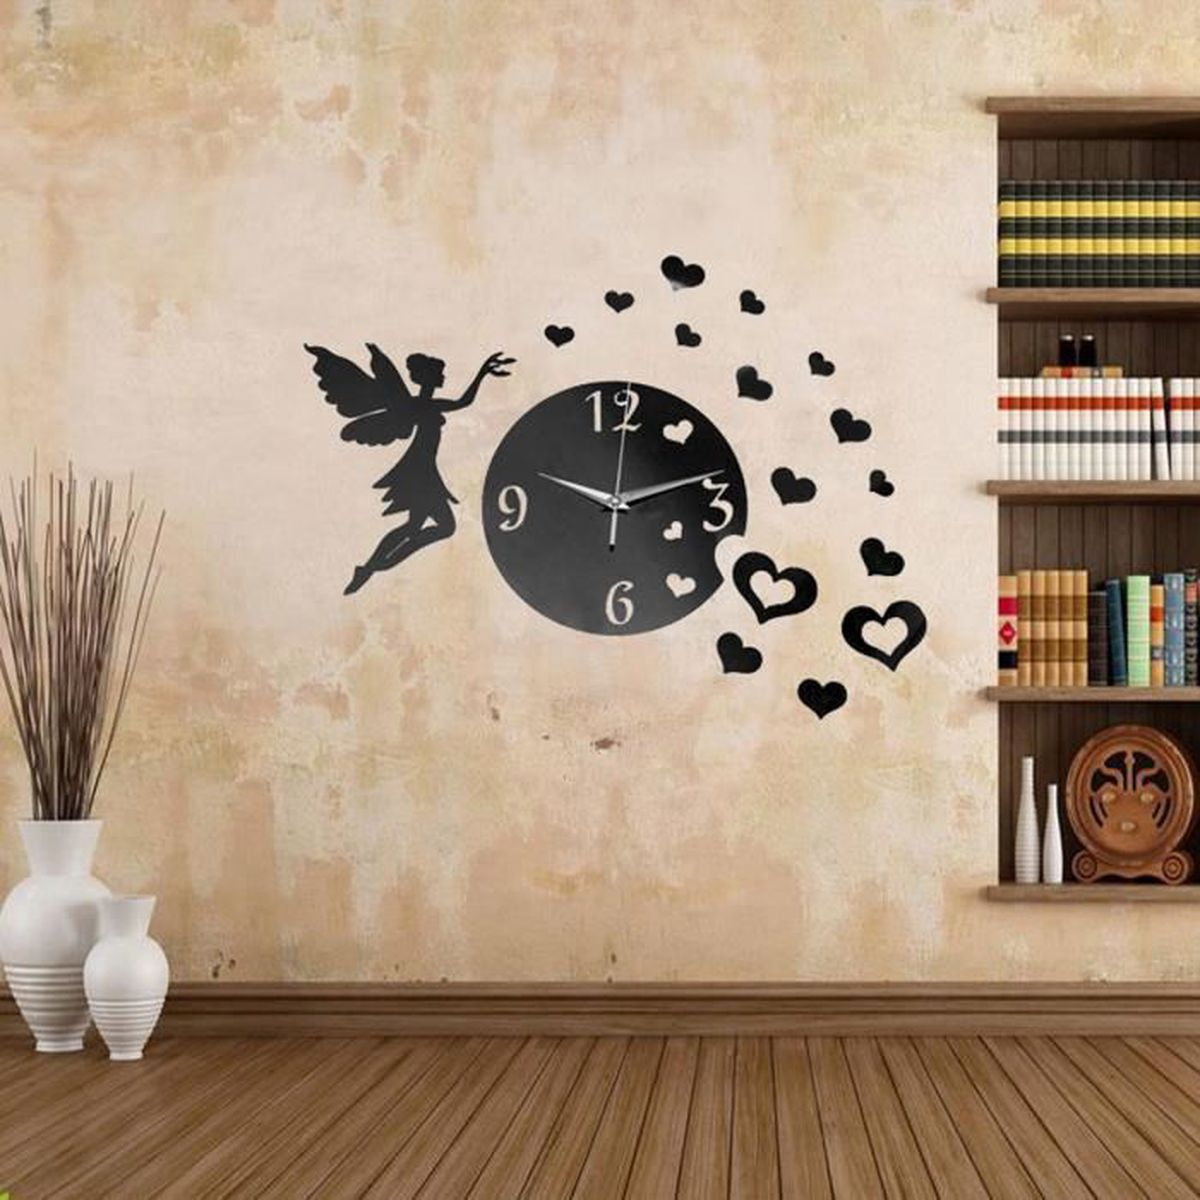 tempsa diy 3d horloge murale moderne design miroir pr. Black Bedroom Furniture Sets. Home Design Ideas